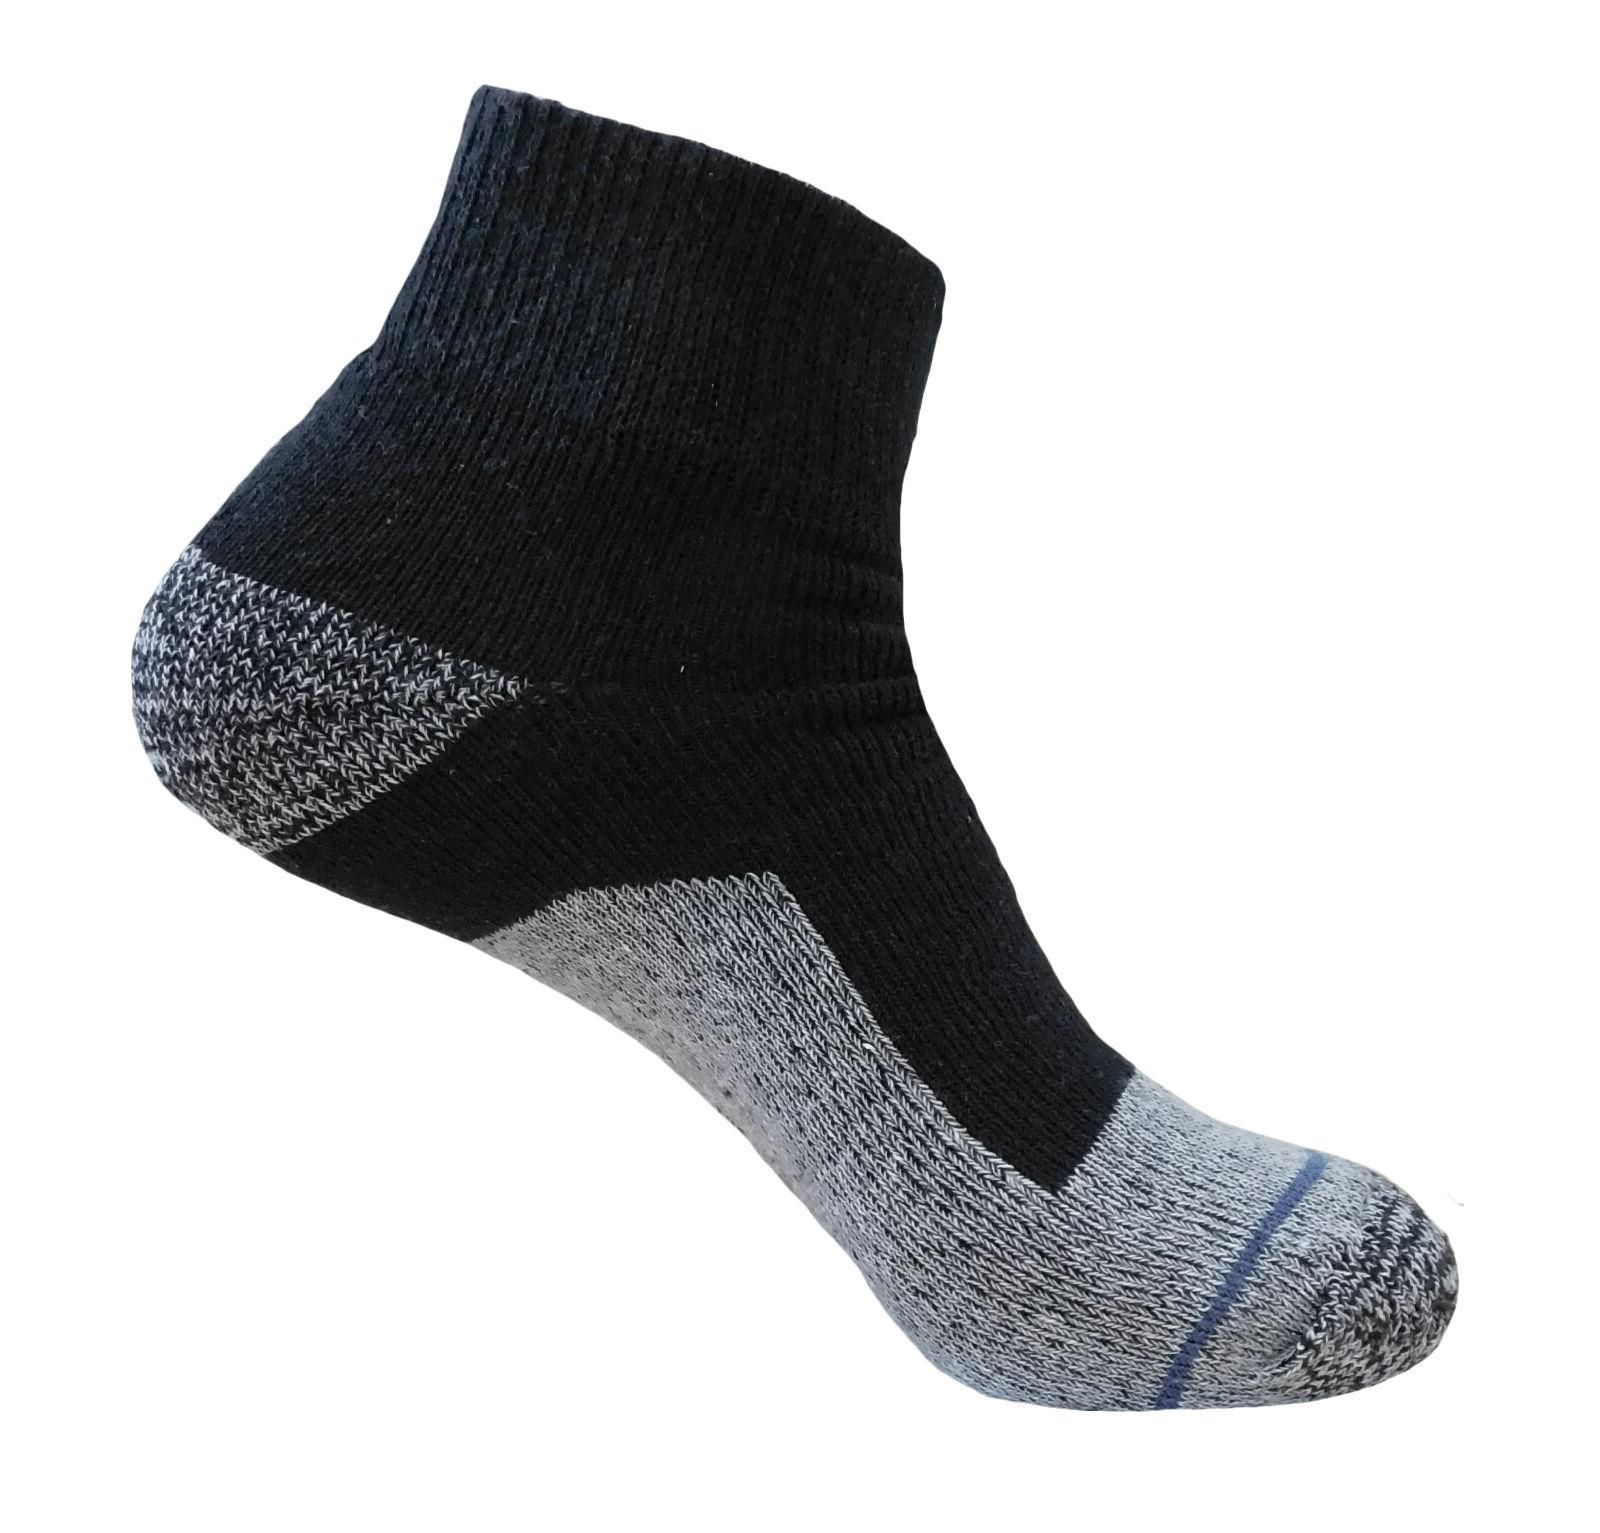 4 ANKLE QUALITY COTTON 10-13